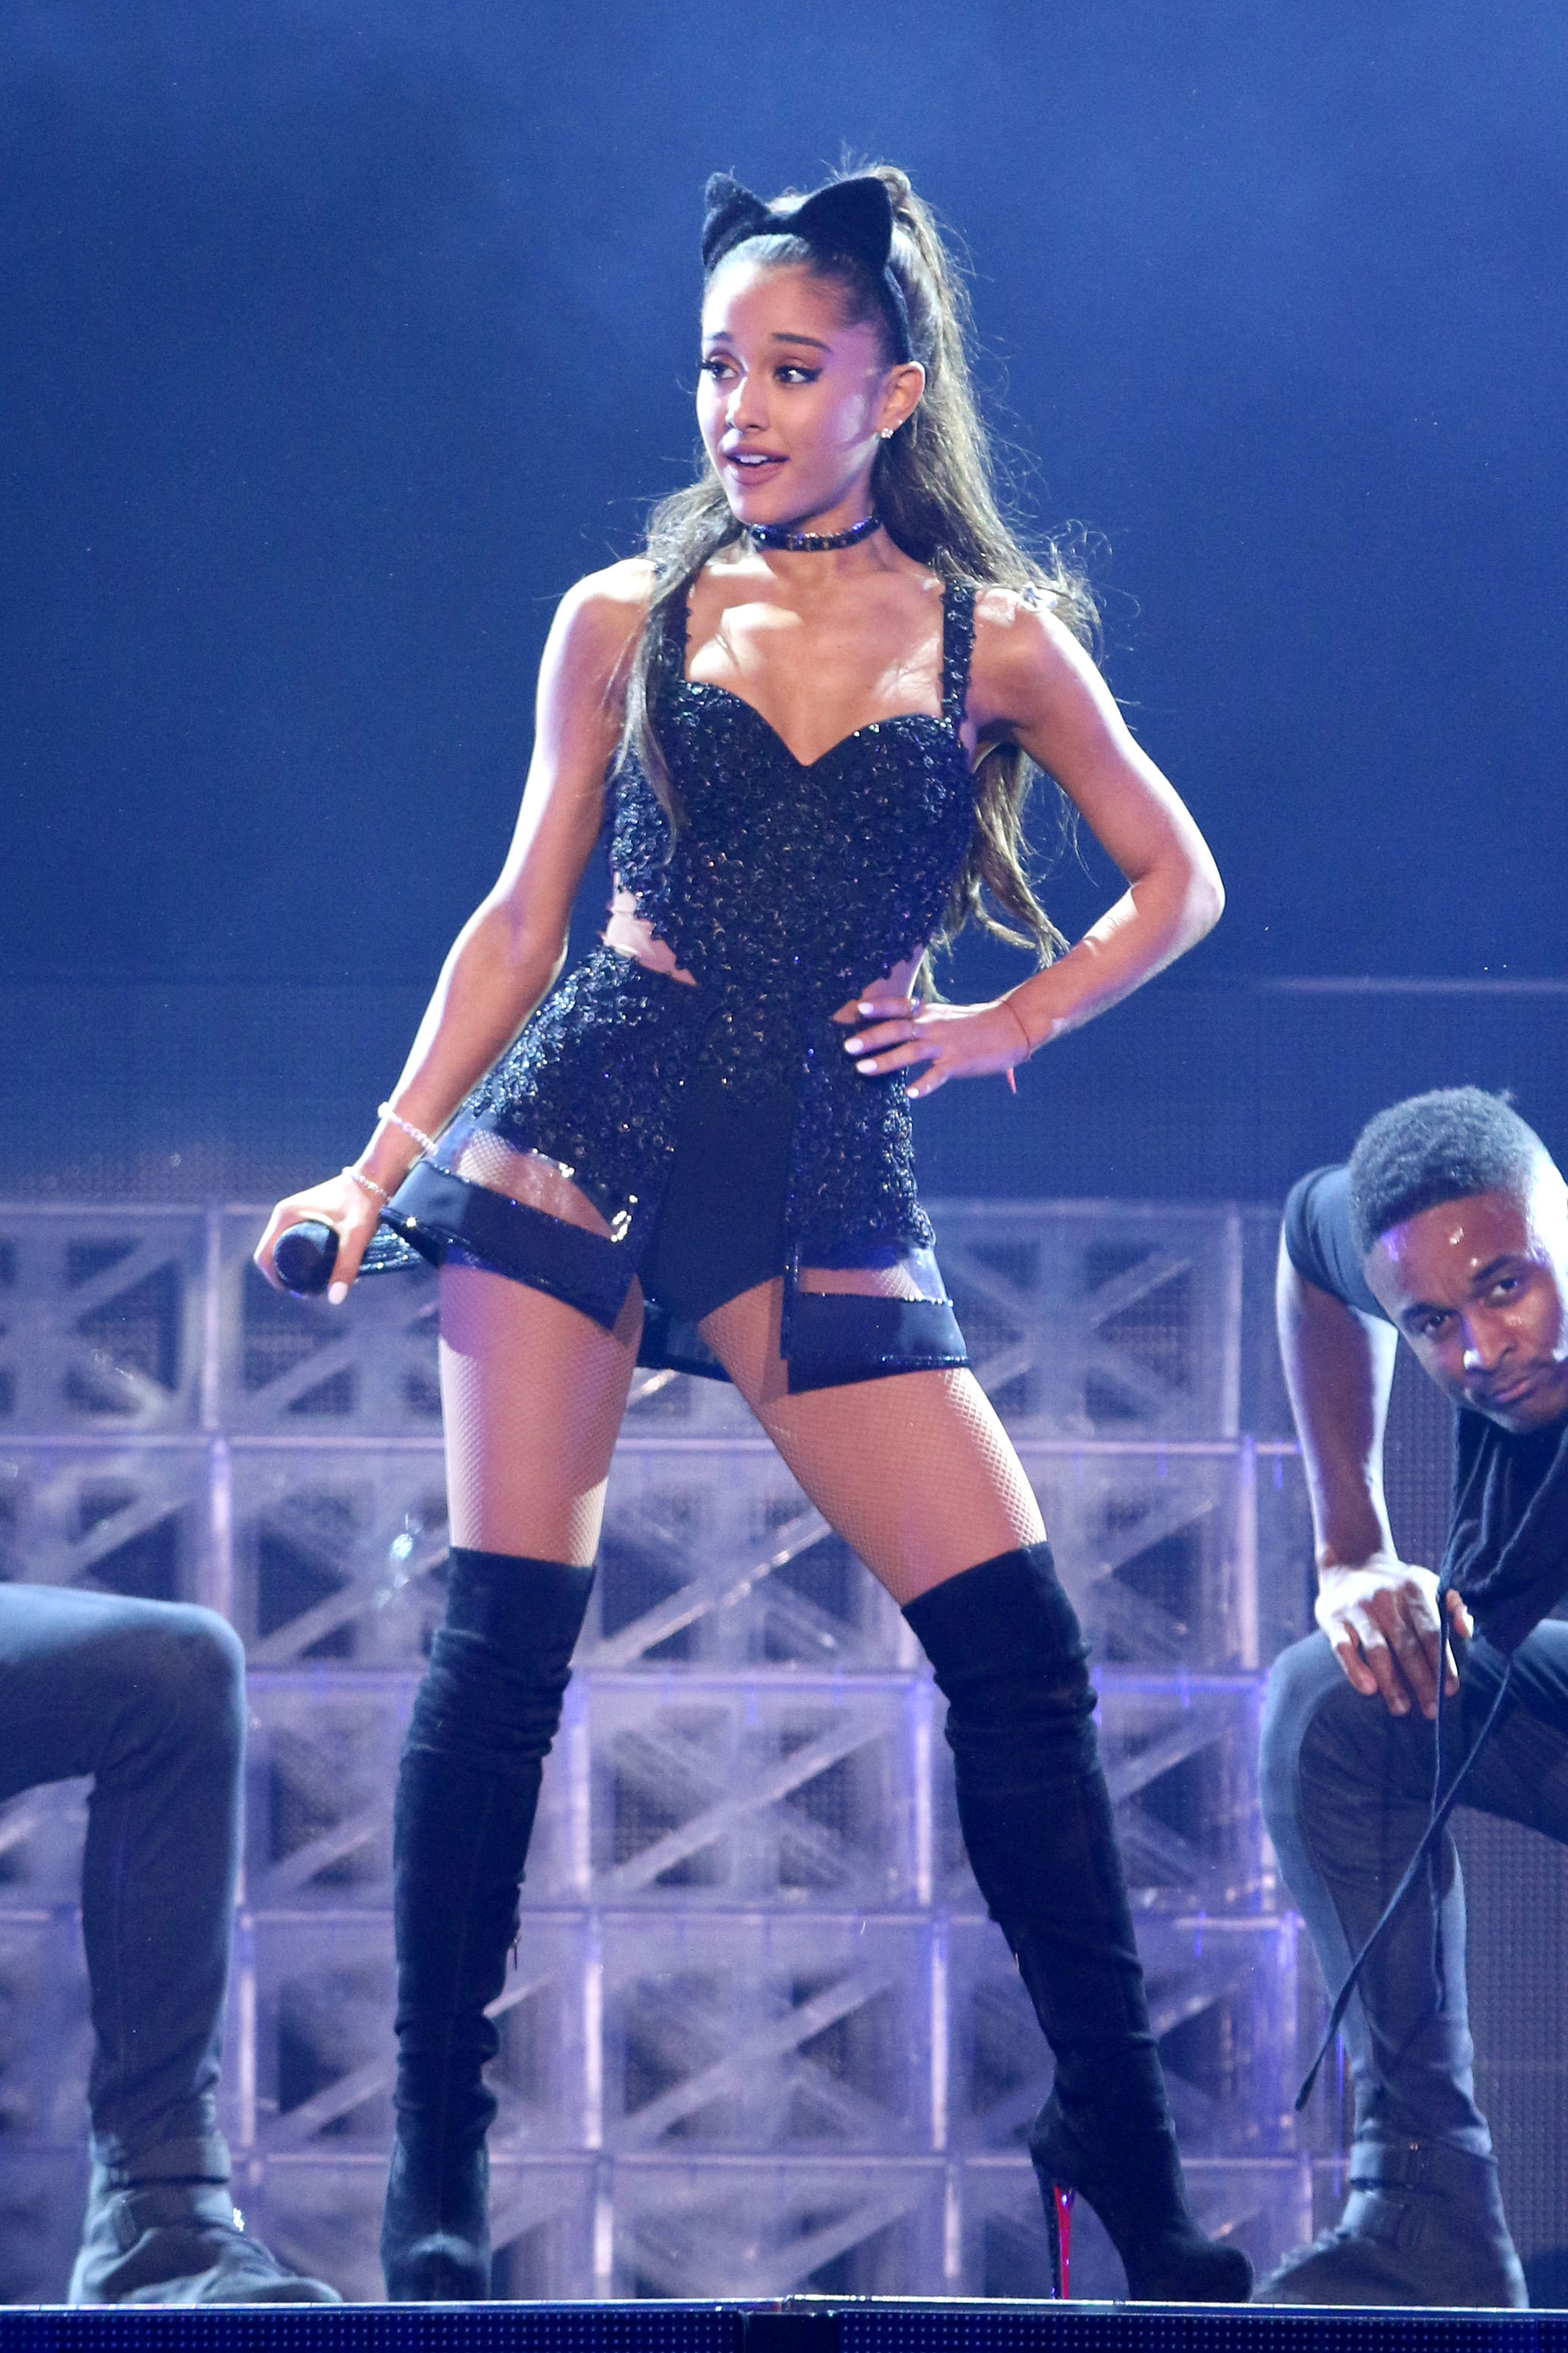 Arian Grande stands up to radio DJs over their questions